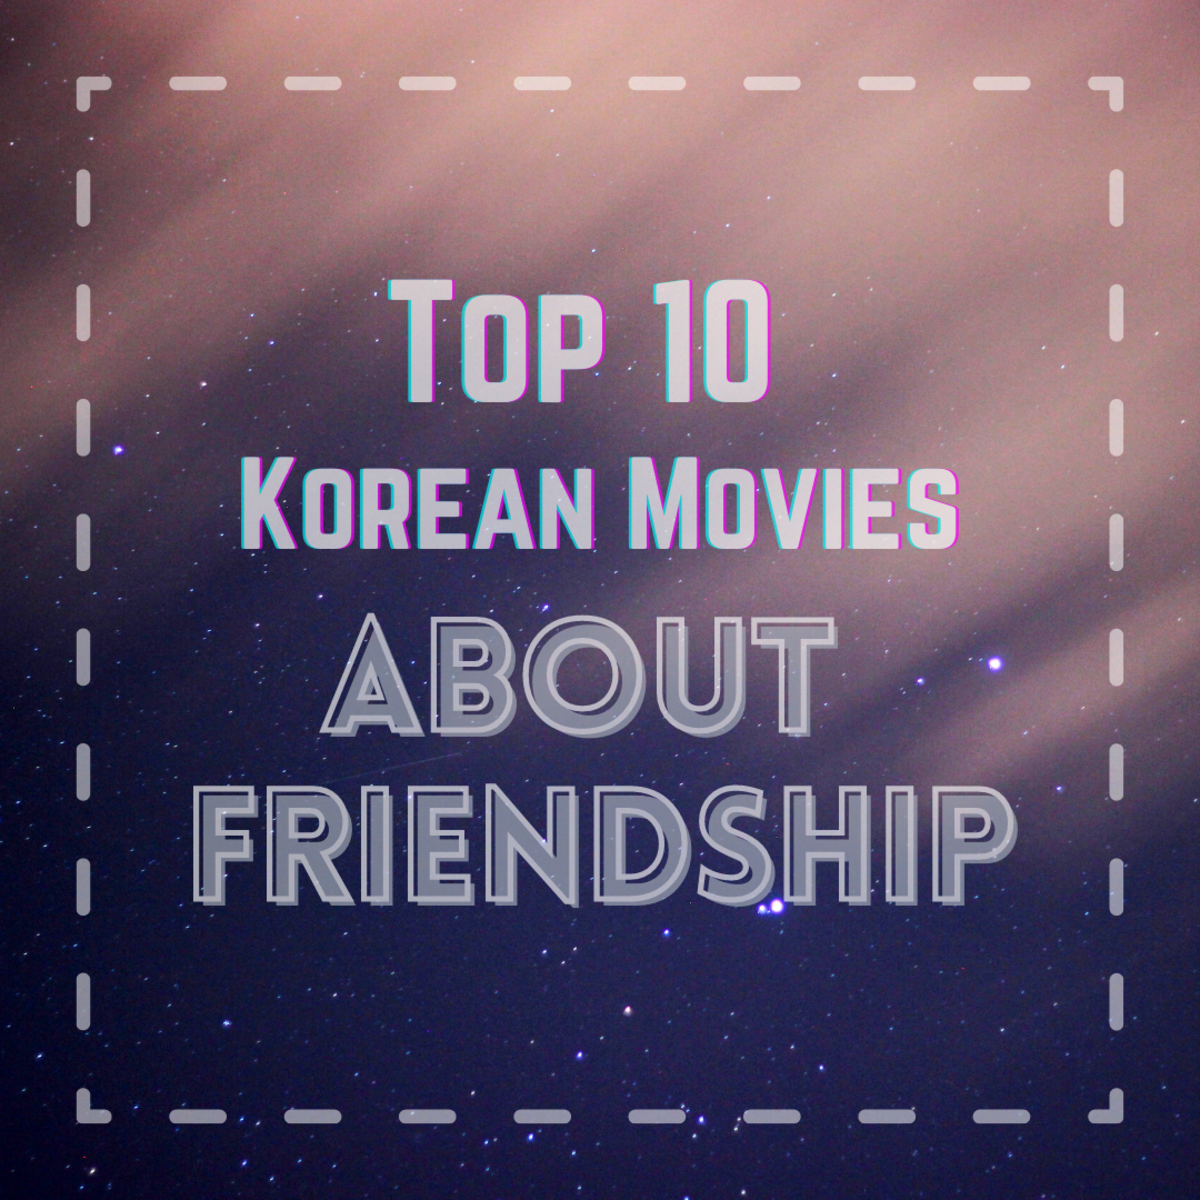 Read on to discover the top 10 Korean friendship films!